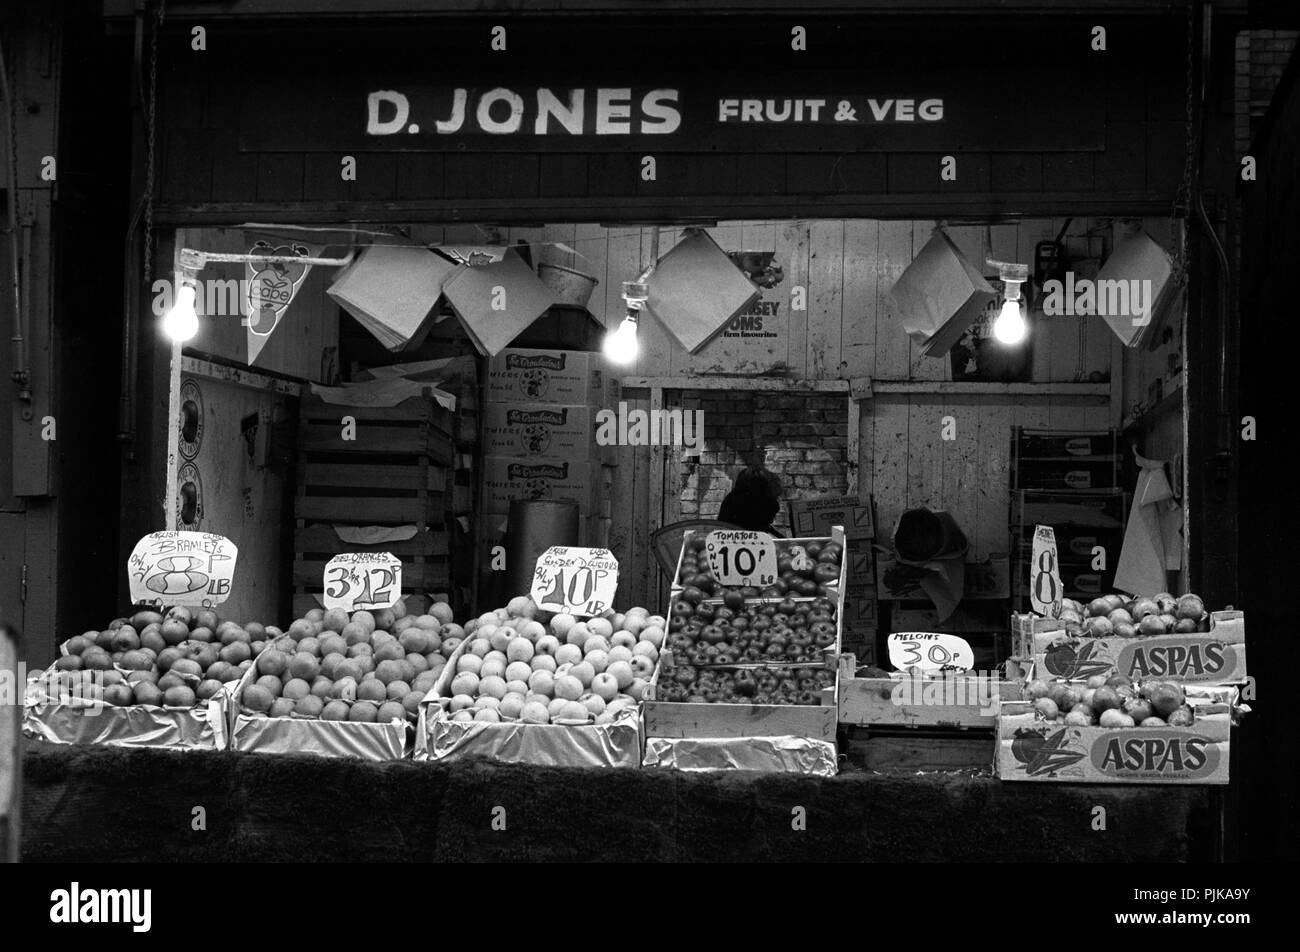 Wales, Cardiff, city centre, The Hayes Outdoor Market, 1979, D Jones fruit and vegetable stall setting up in early morning - Stock Image